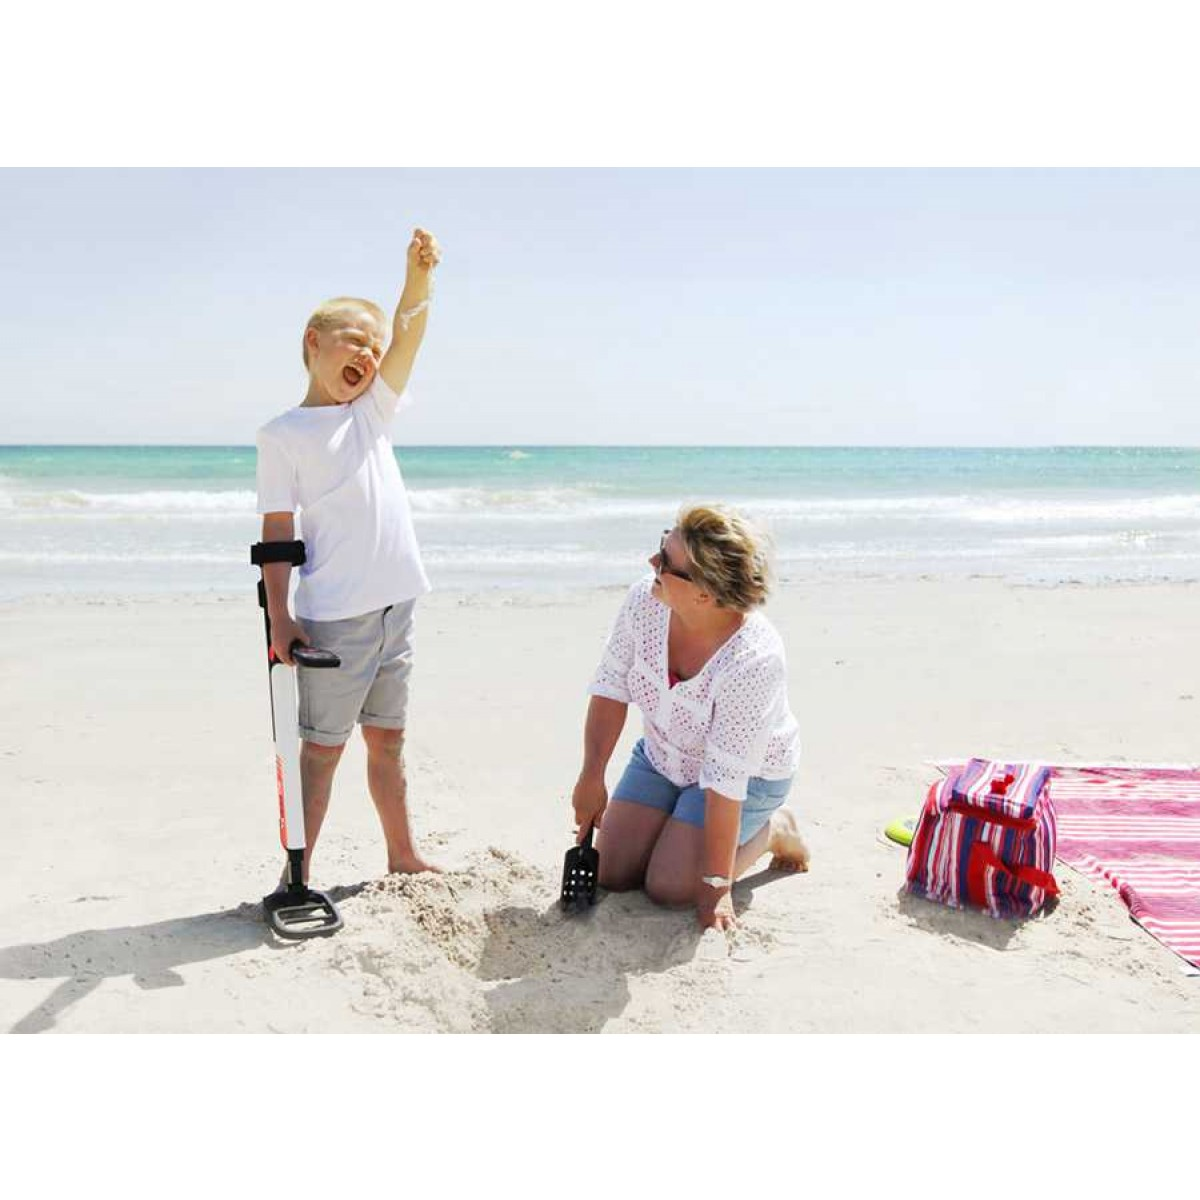 Minelab Go Find 20 Metal Detector Kellyco Fun To Findcoins At The Beach 32310001 Image 4